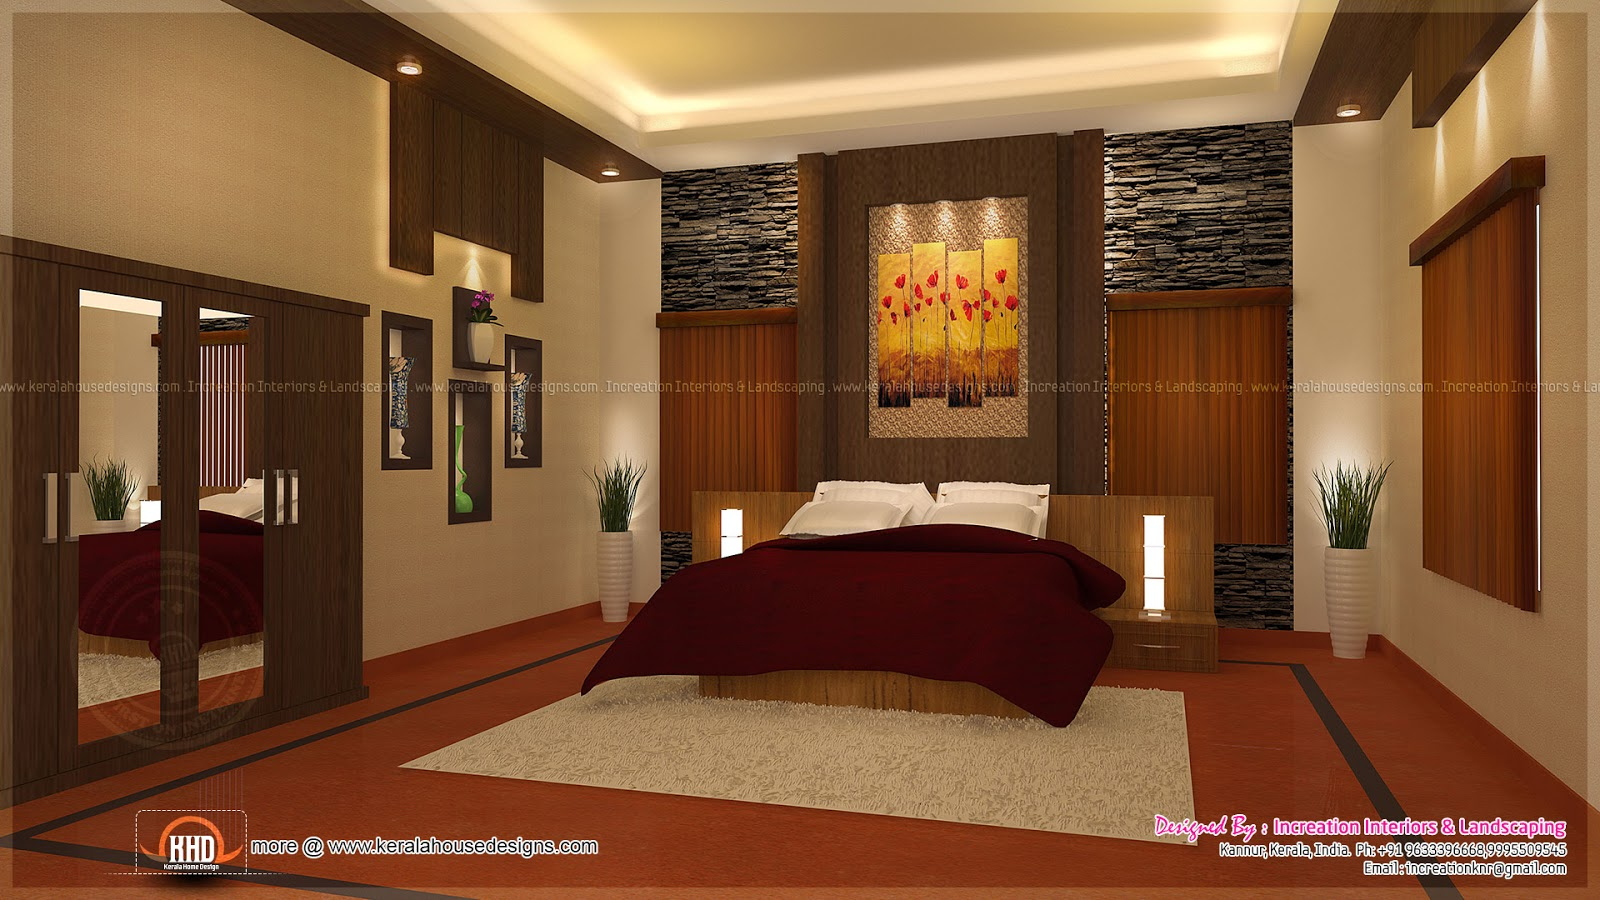 Master bedroom interior Interior design ideas for kerala houses